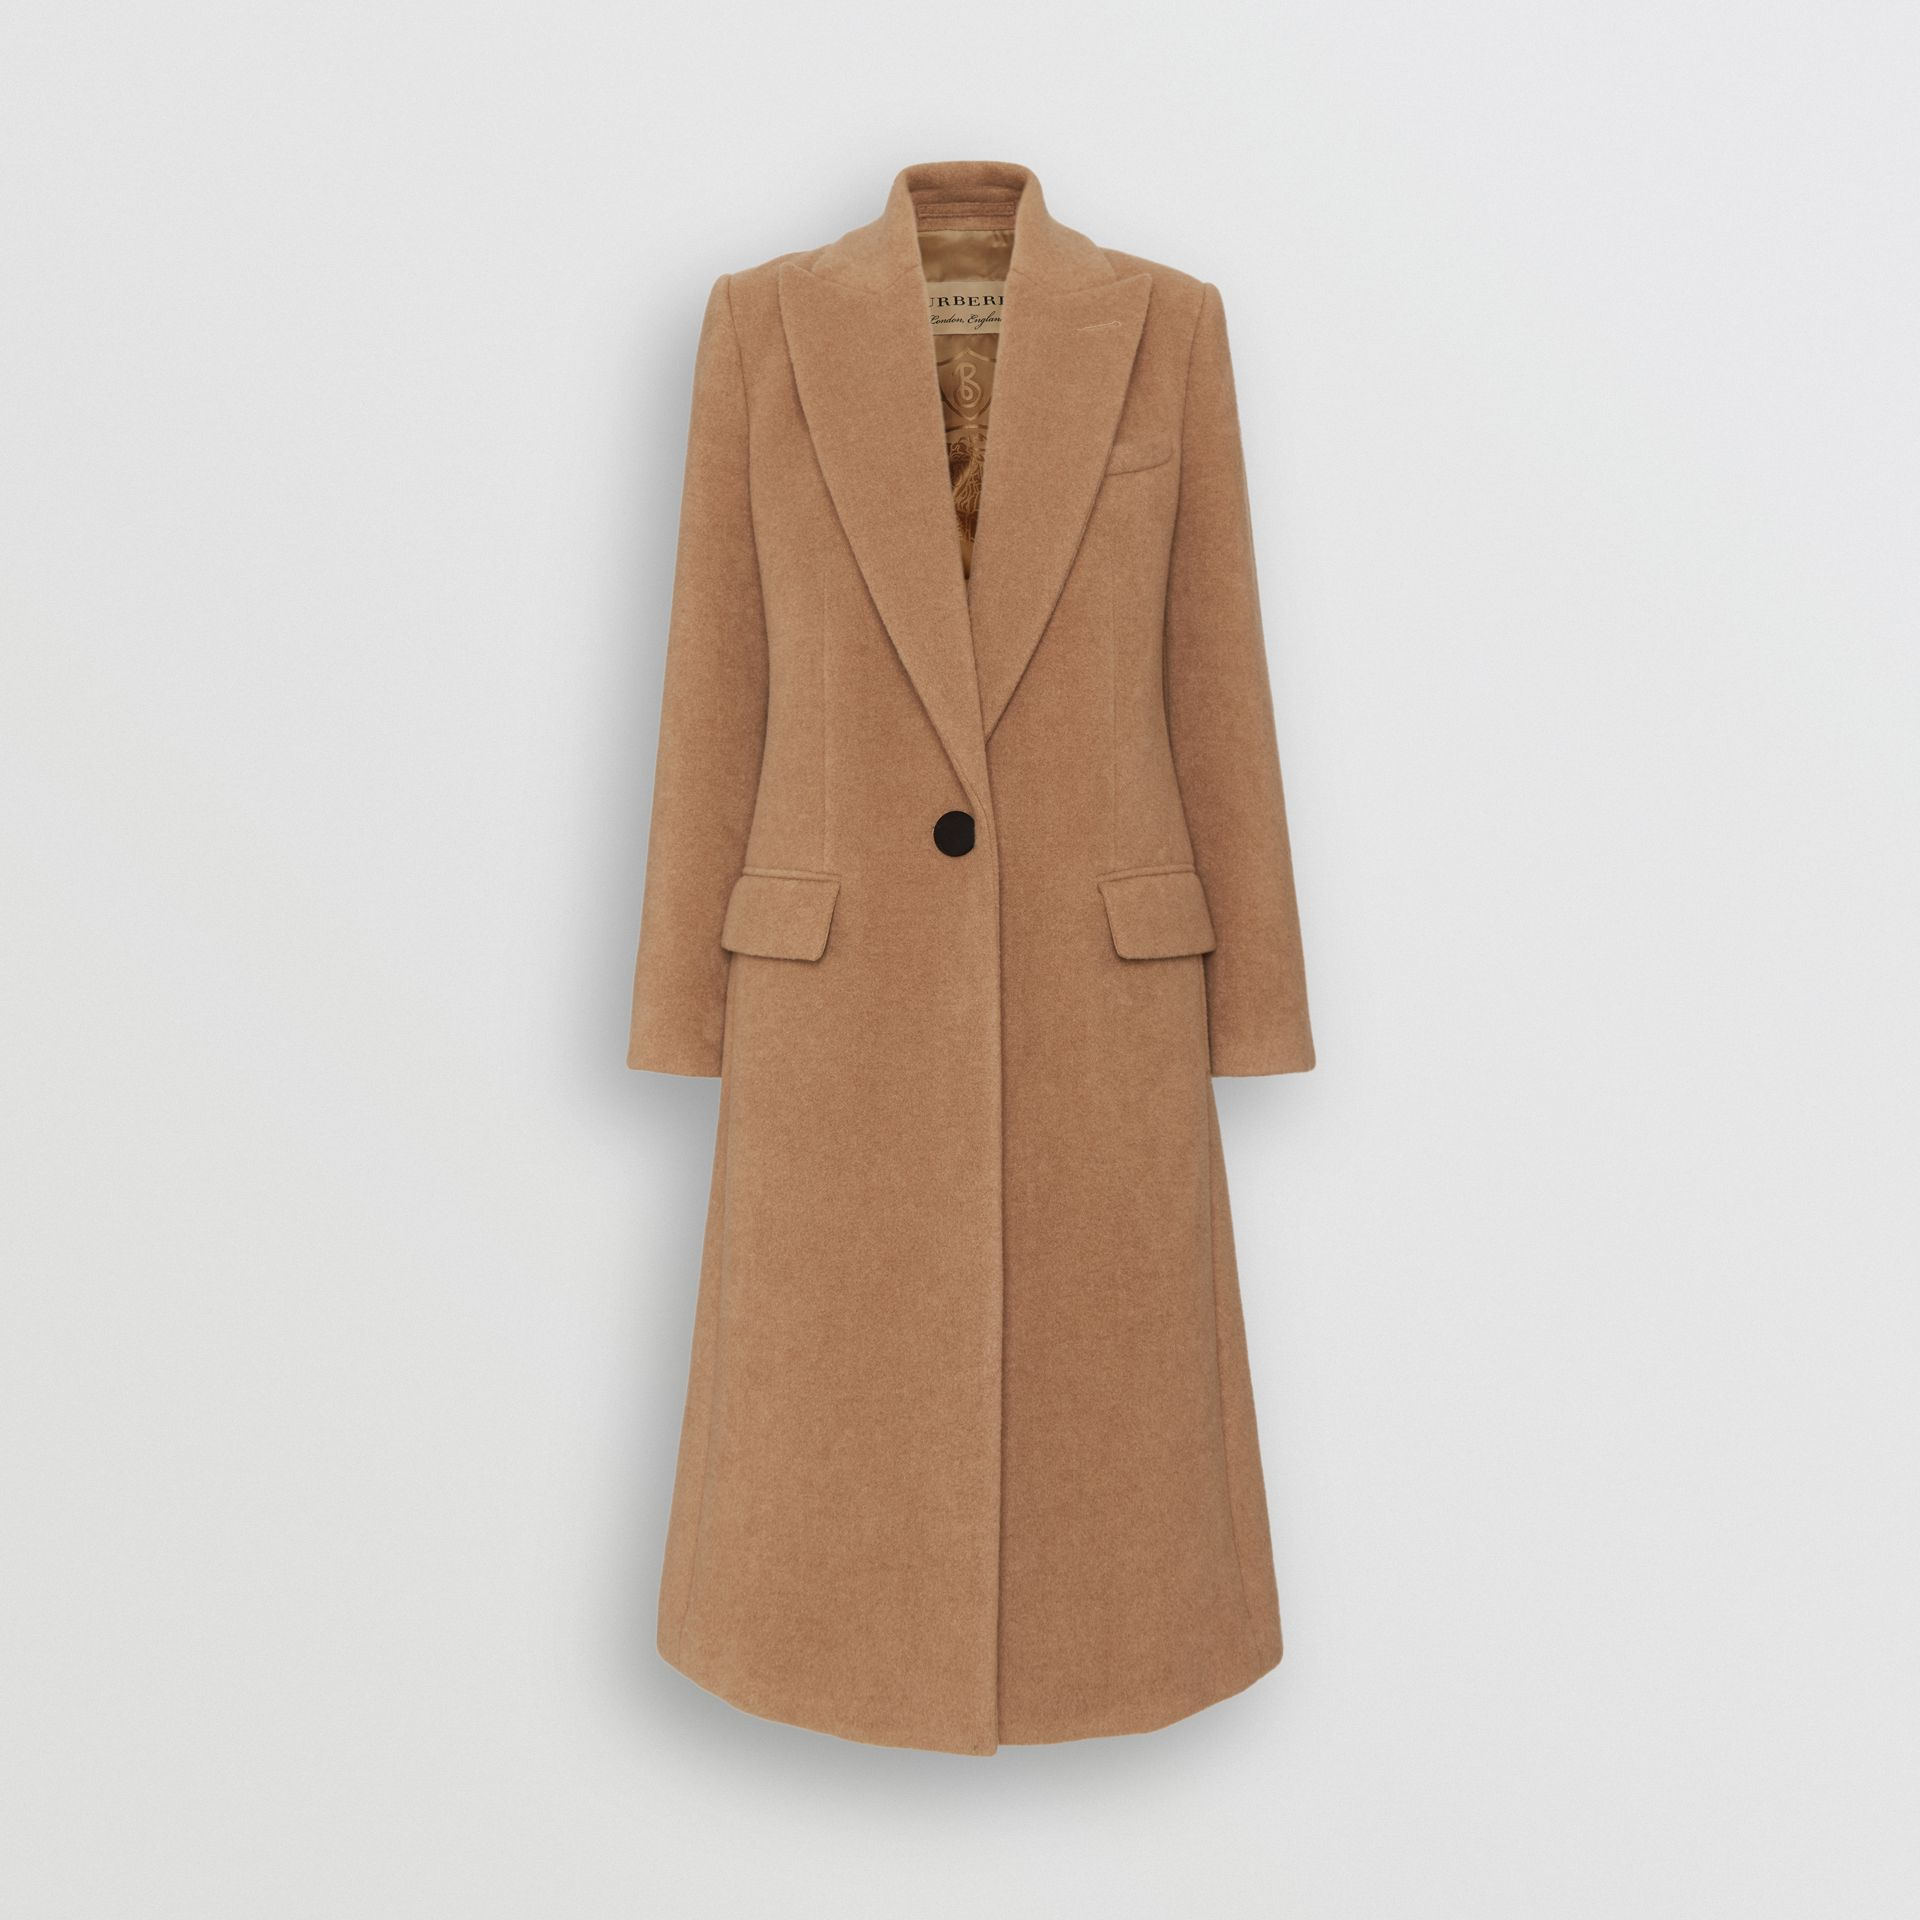 Oversized Lapel Camel Hair Tailored Coat - Women | Burberry - gallery image 3